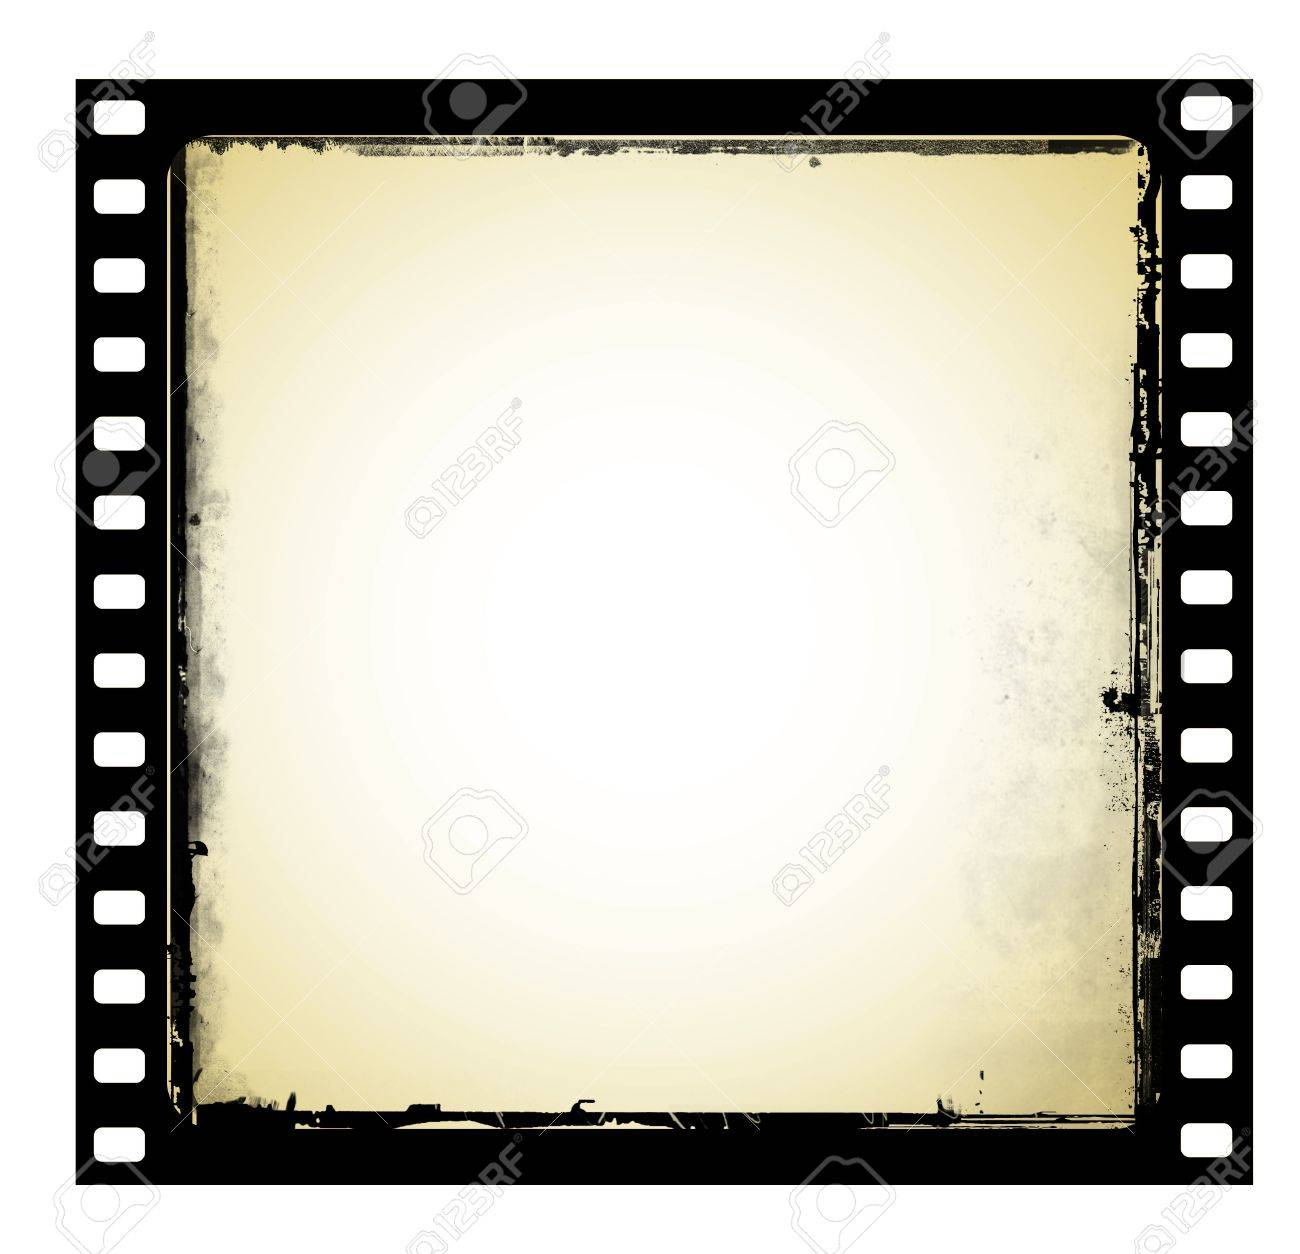 1300x1254 Old Film Frame In Grunge Style Stock Photo, Picture And Royalty